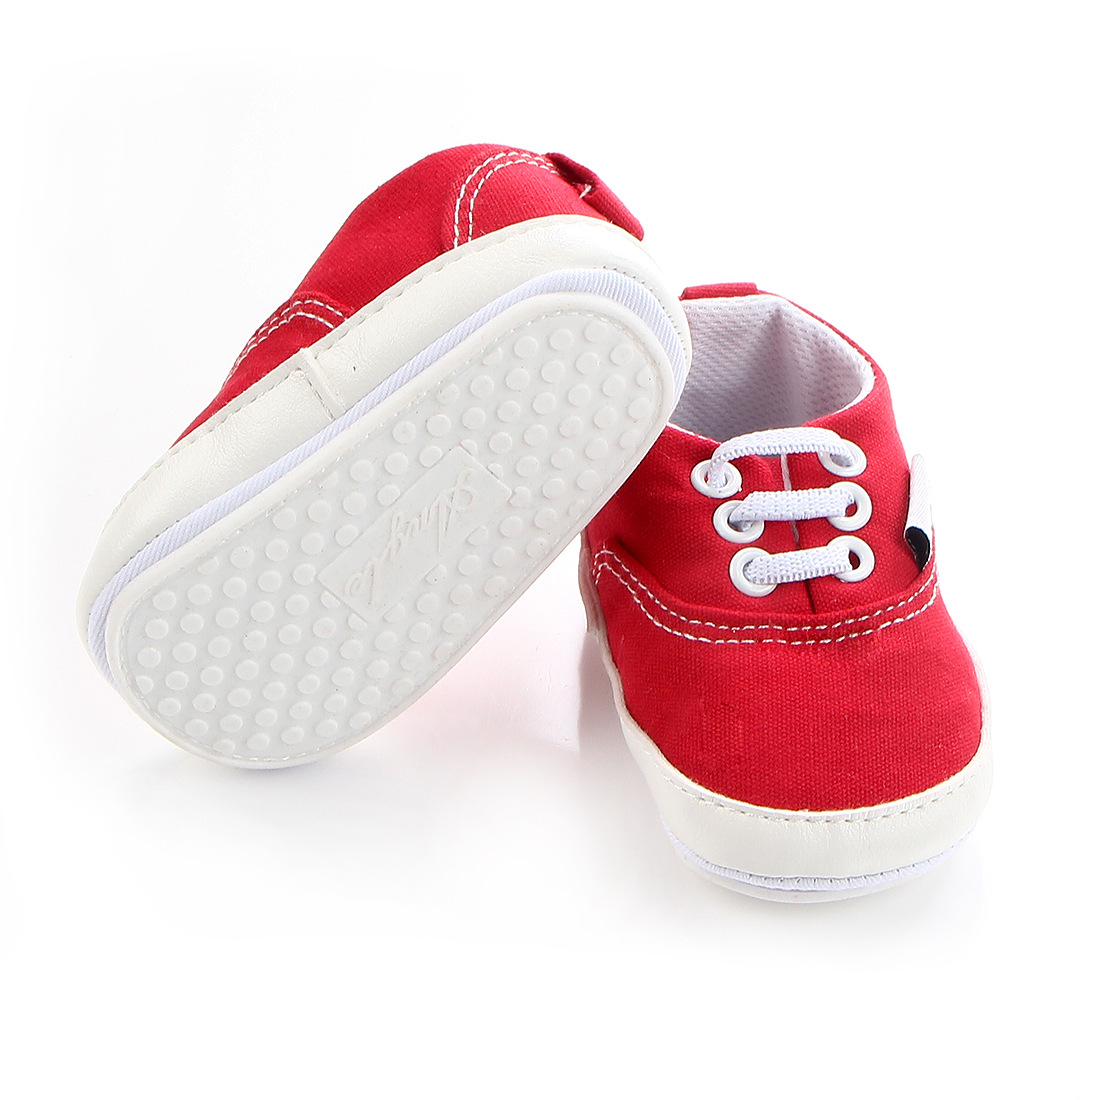 fashion 1 pair rubber outsole First Walkers,Baby Kids Girl Floor Shoes Soft Toddler shoes